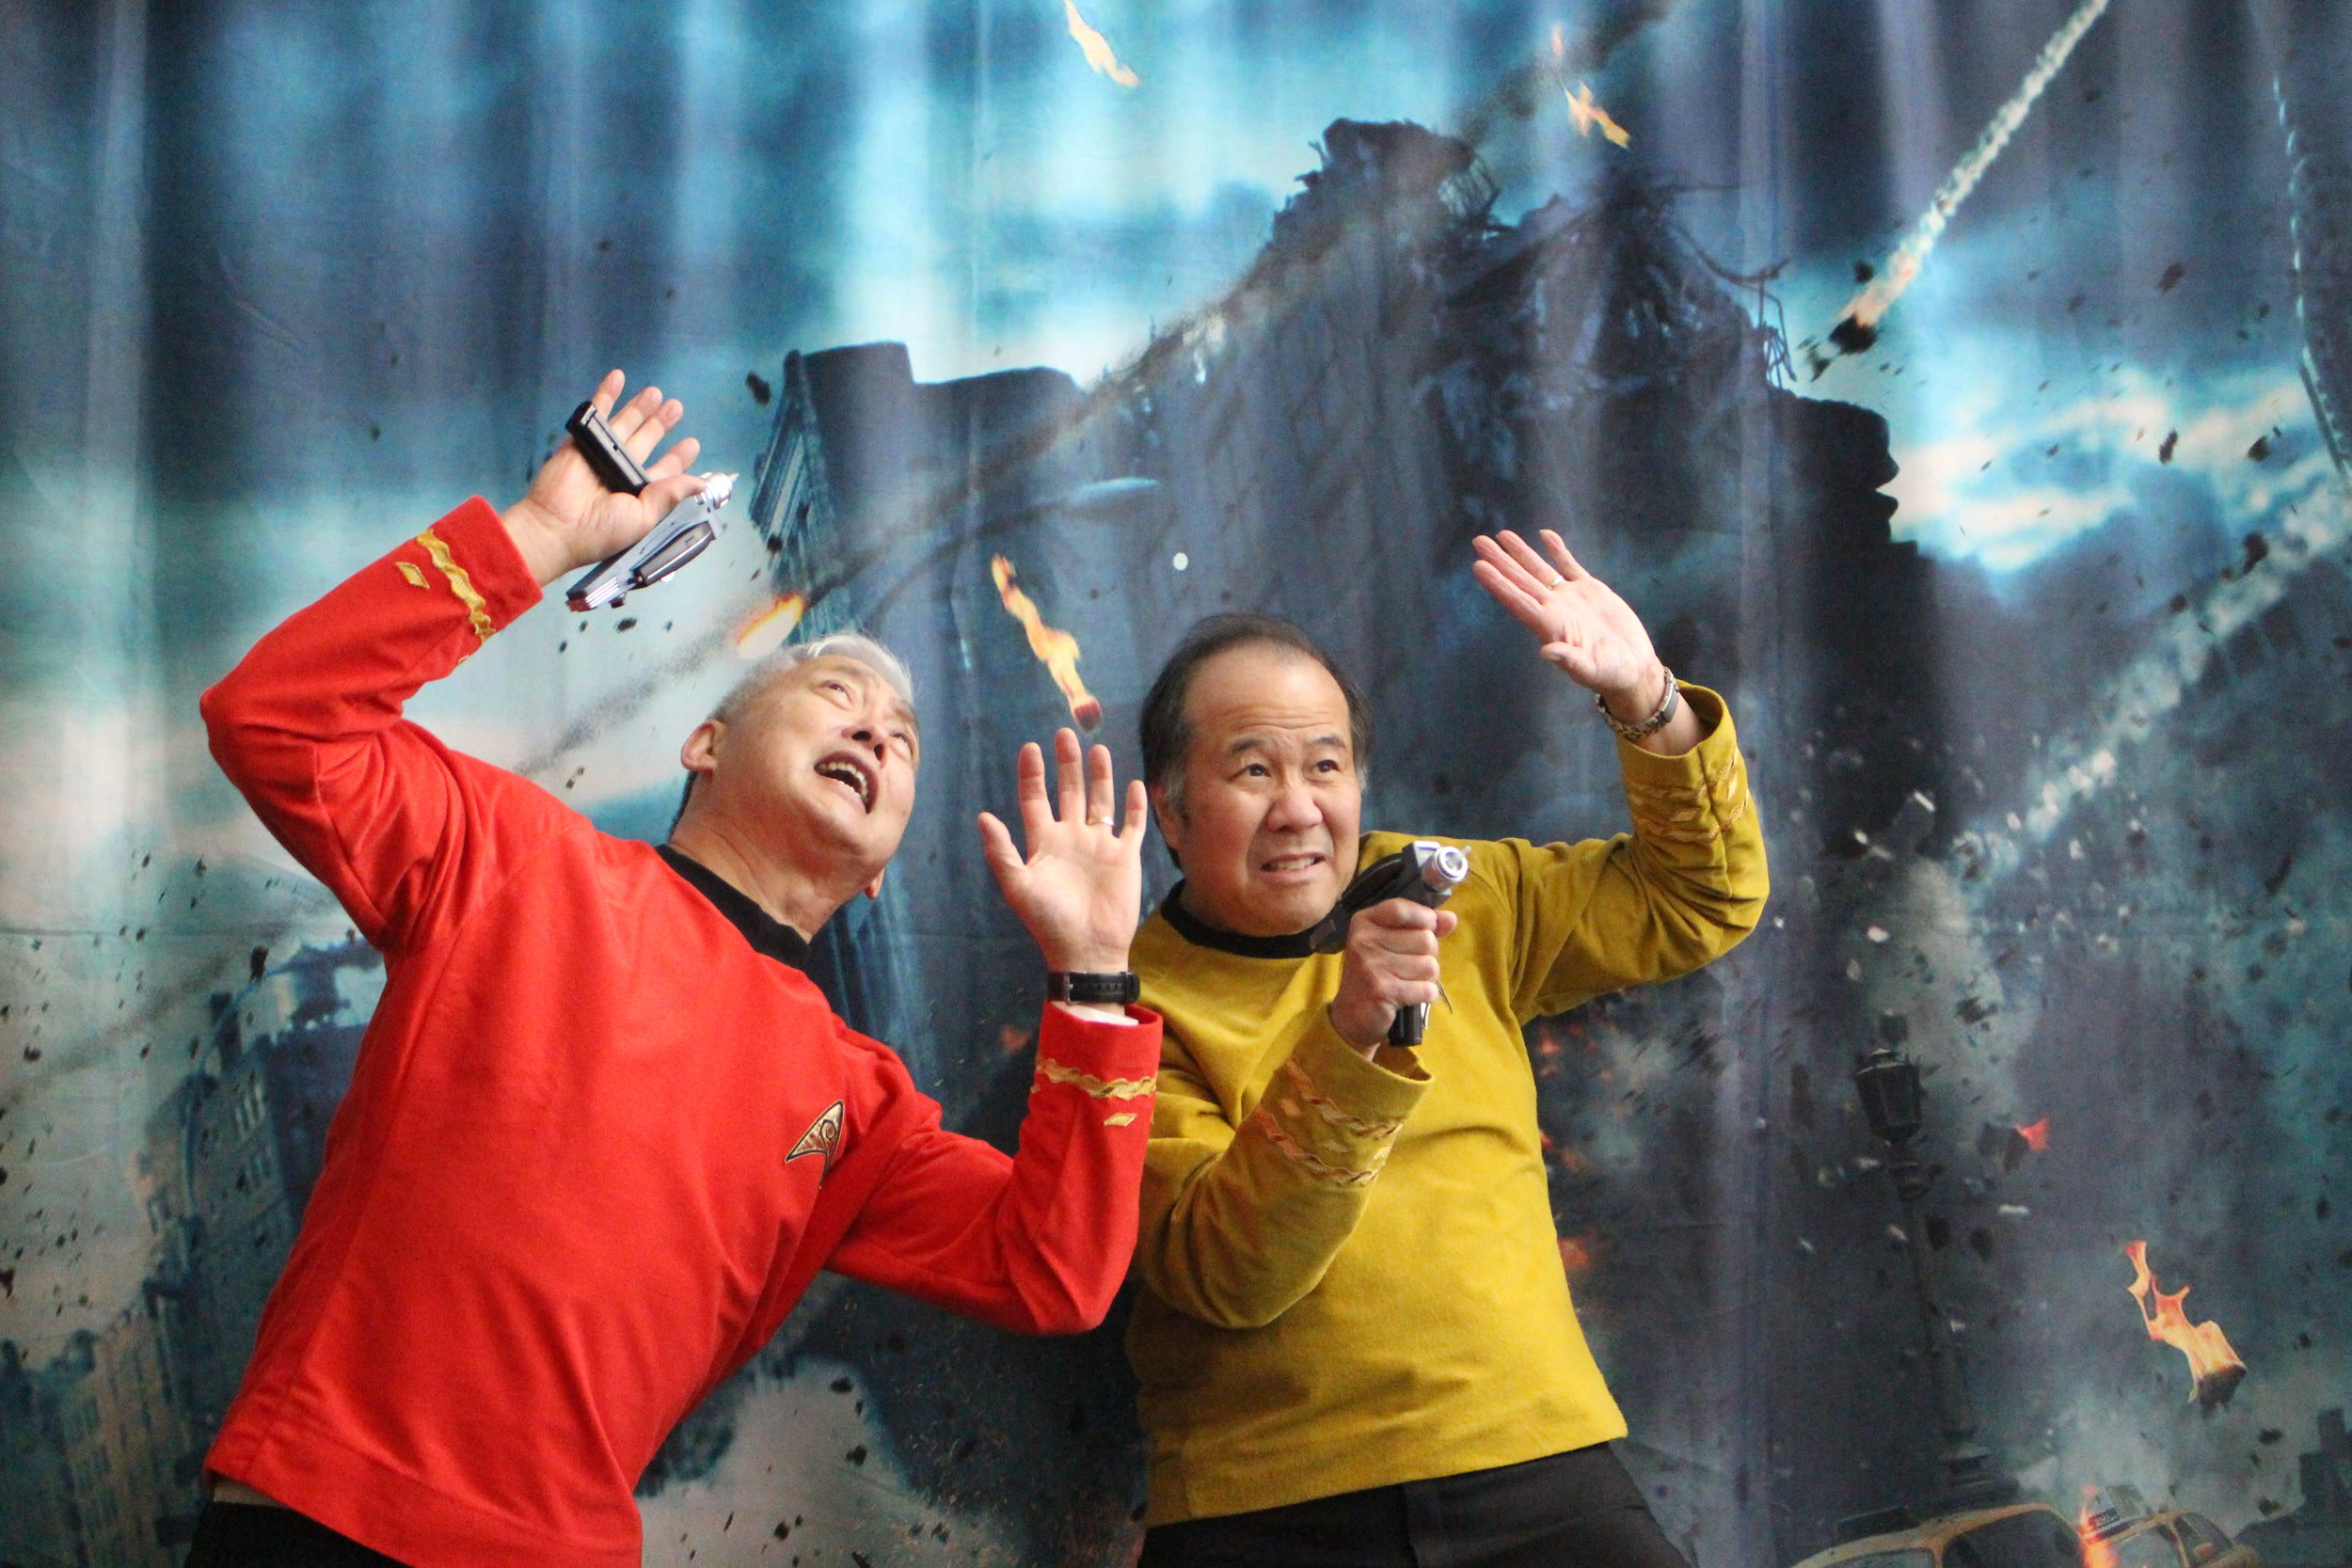 Backdrop being used by some Trekkies.